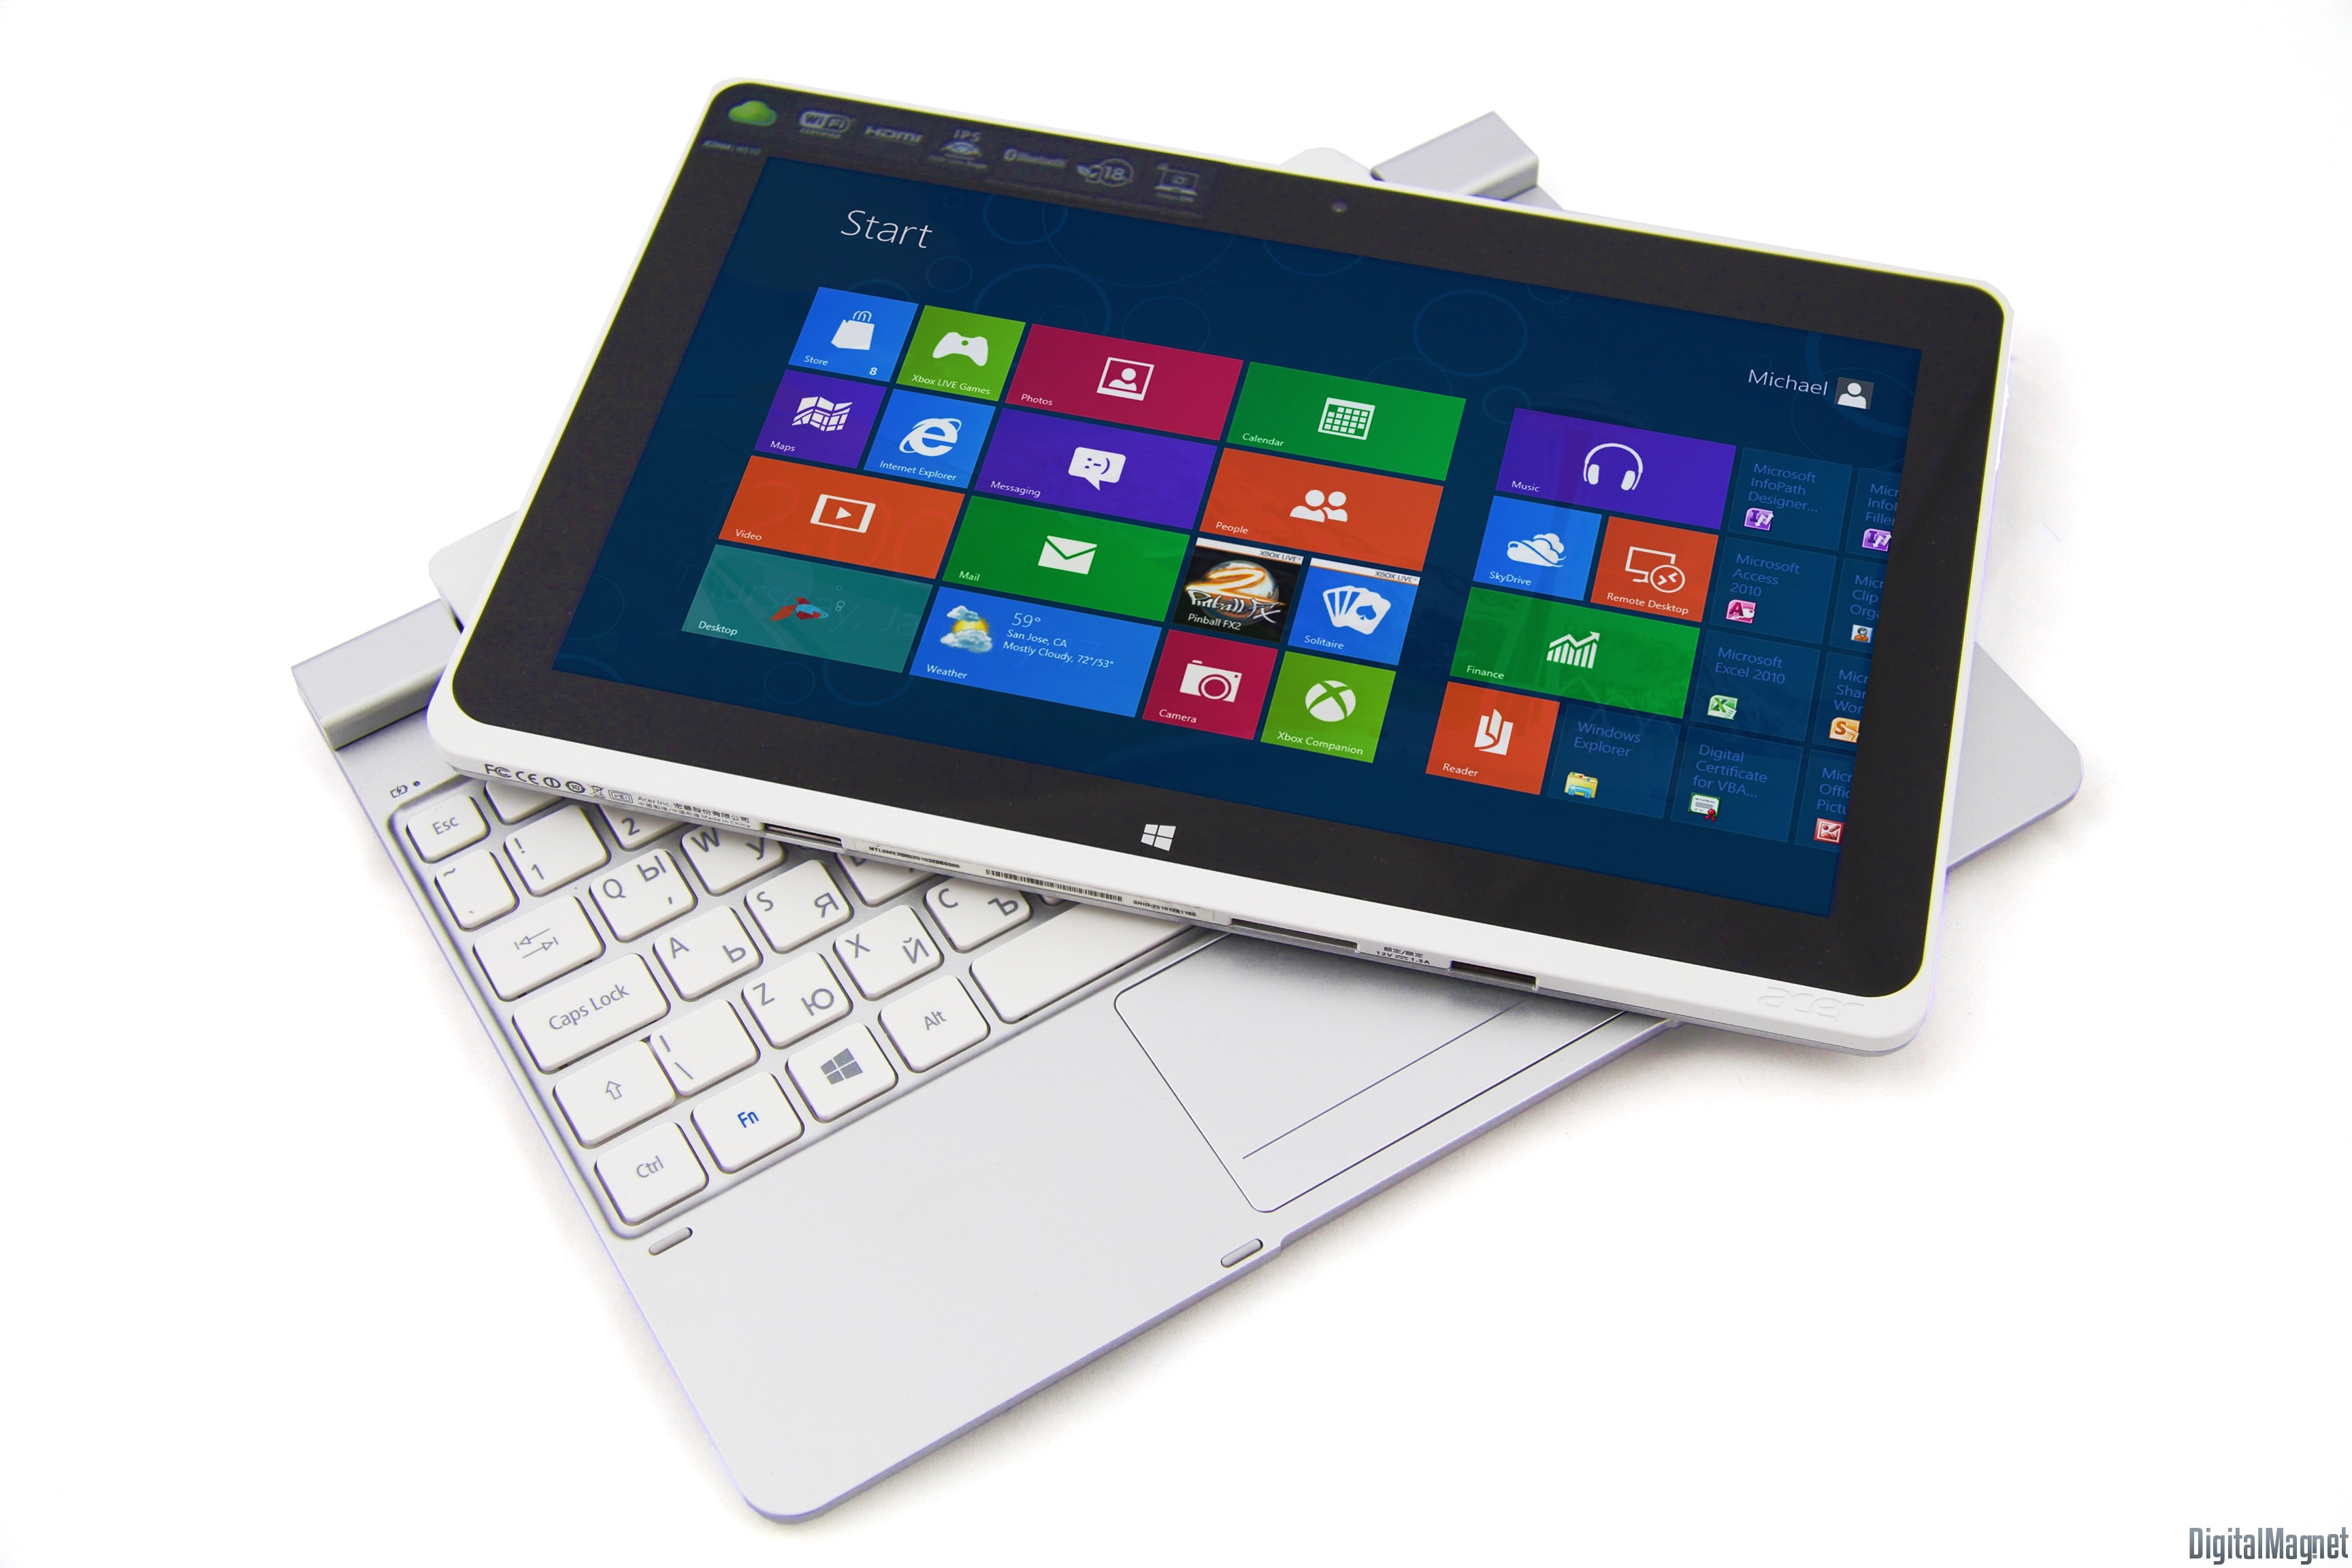 Acer Iconia Tab W510 Parts